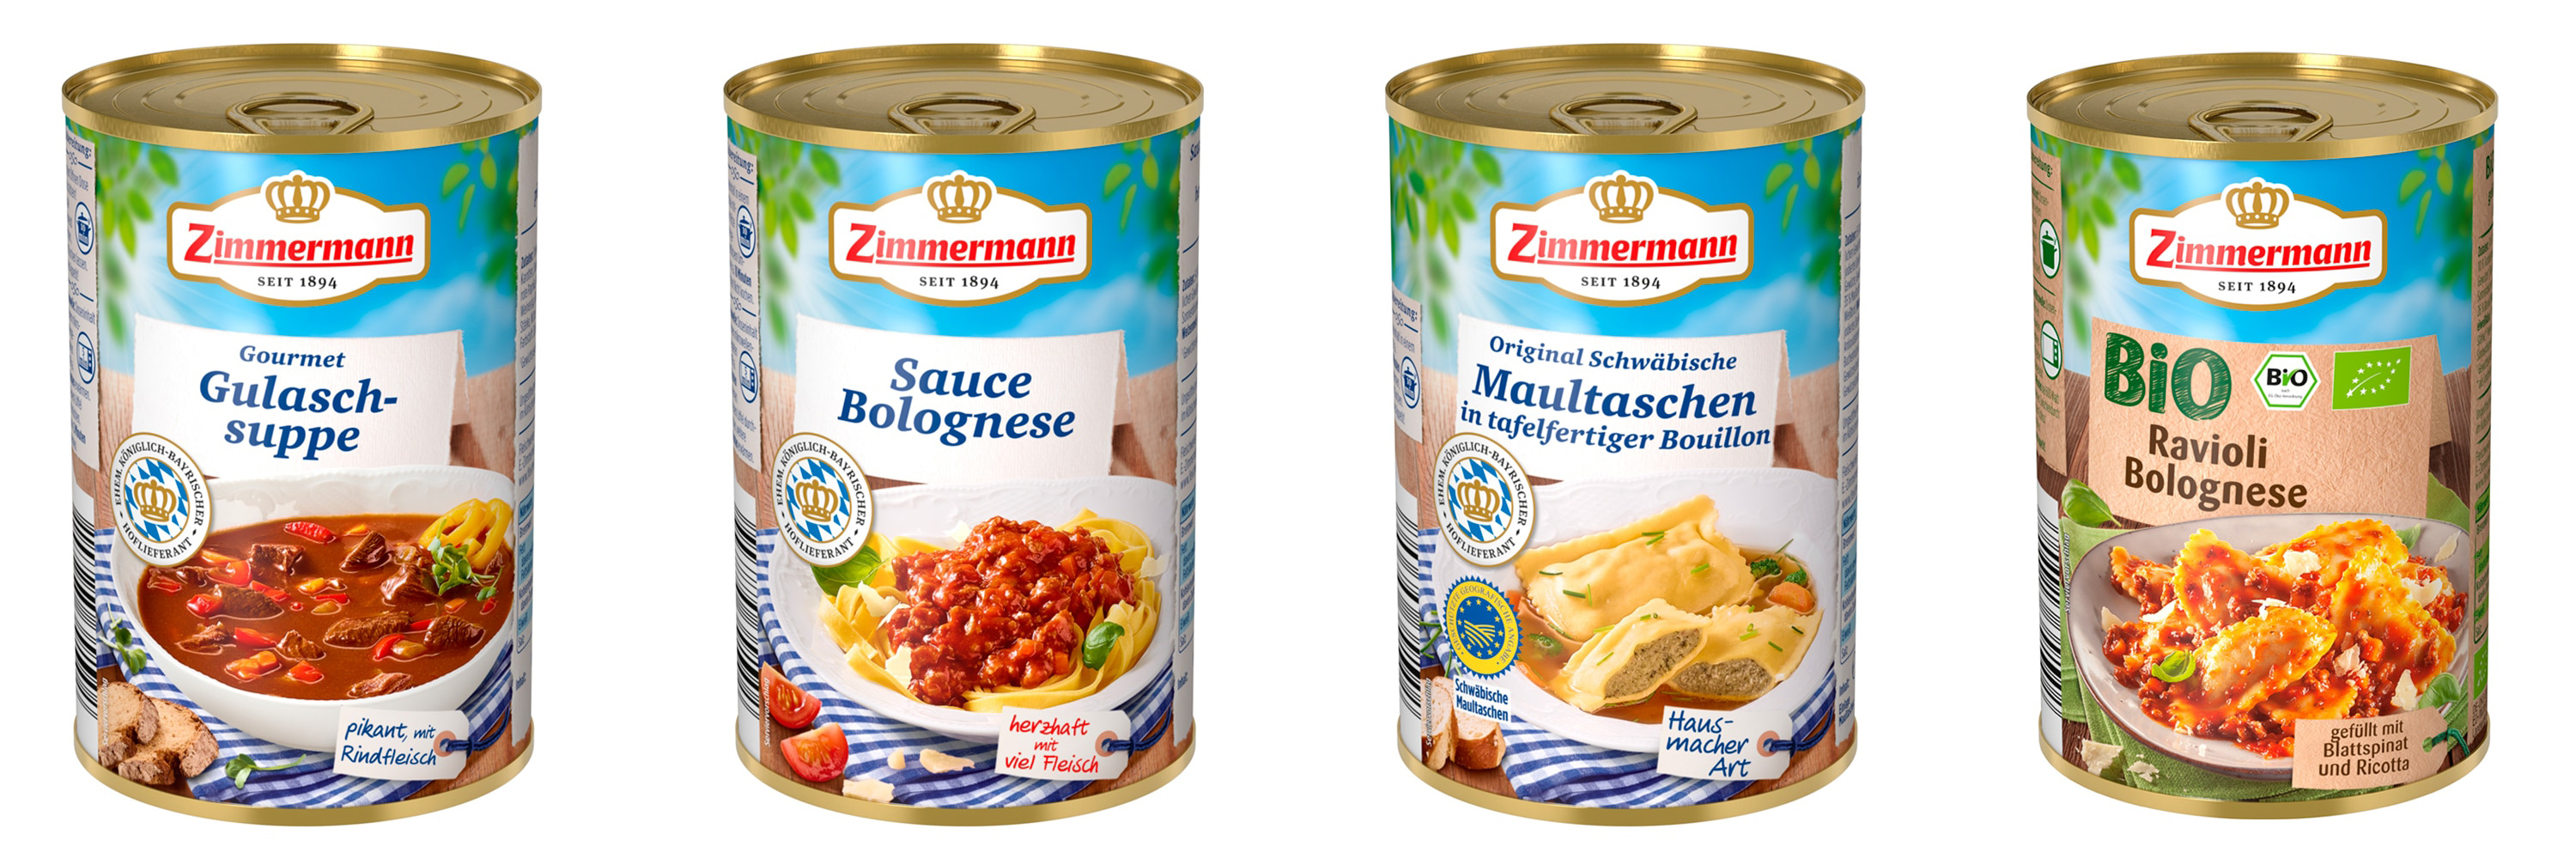 packaging of 4 canned food dishes